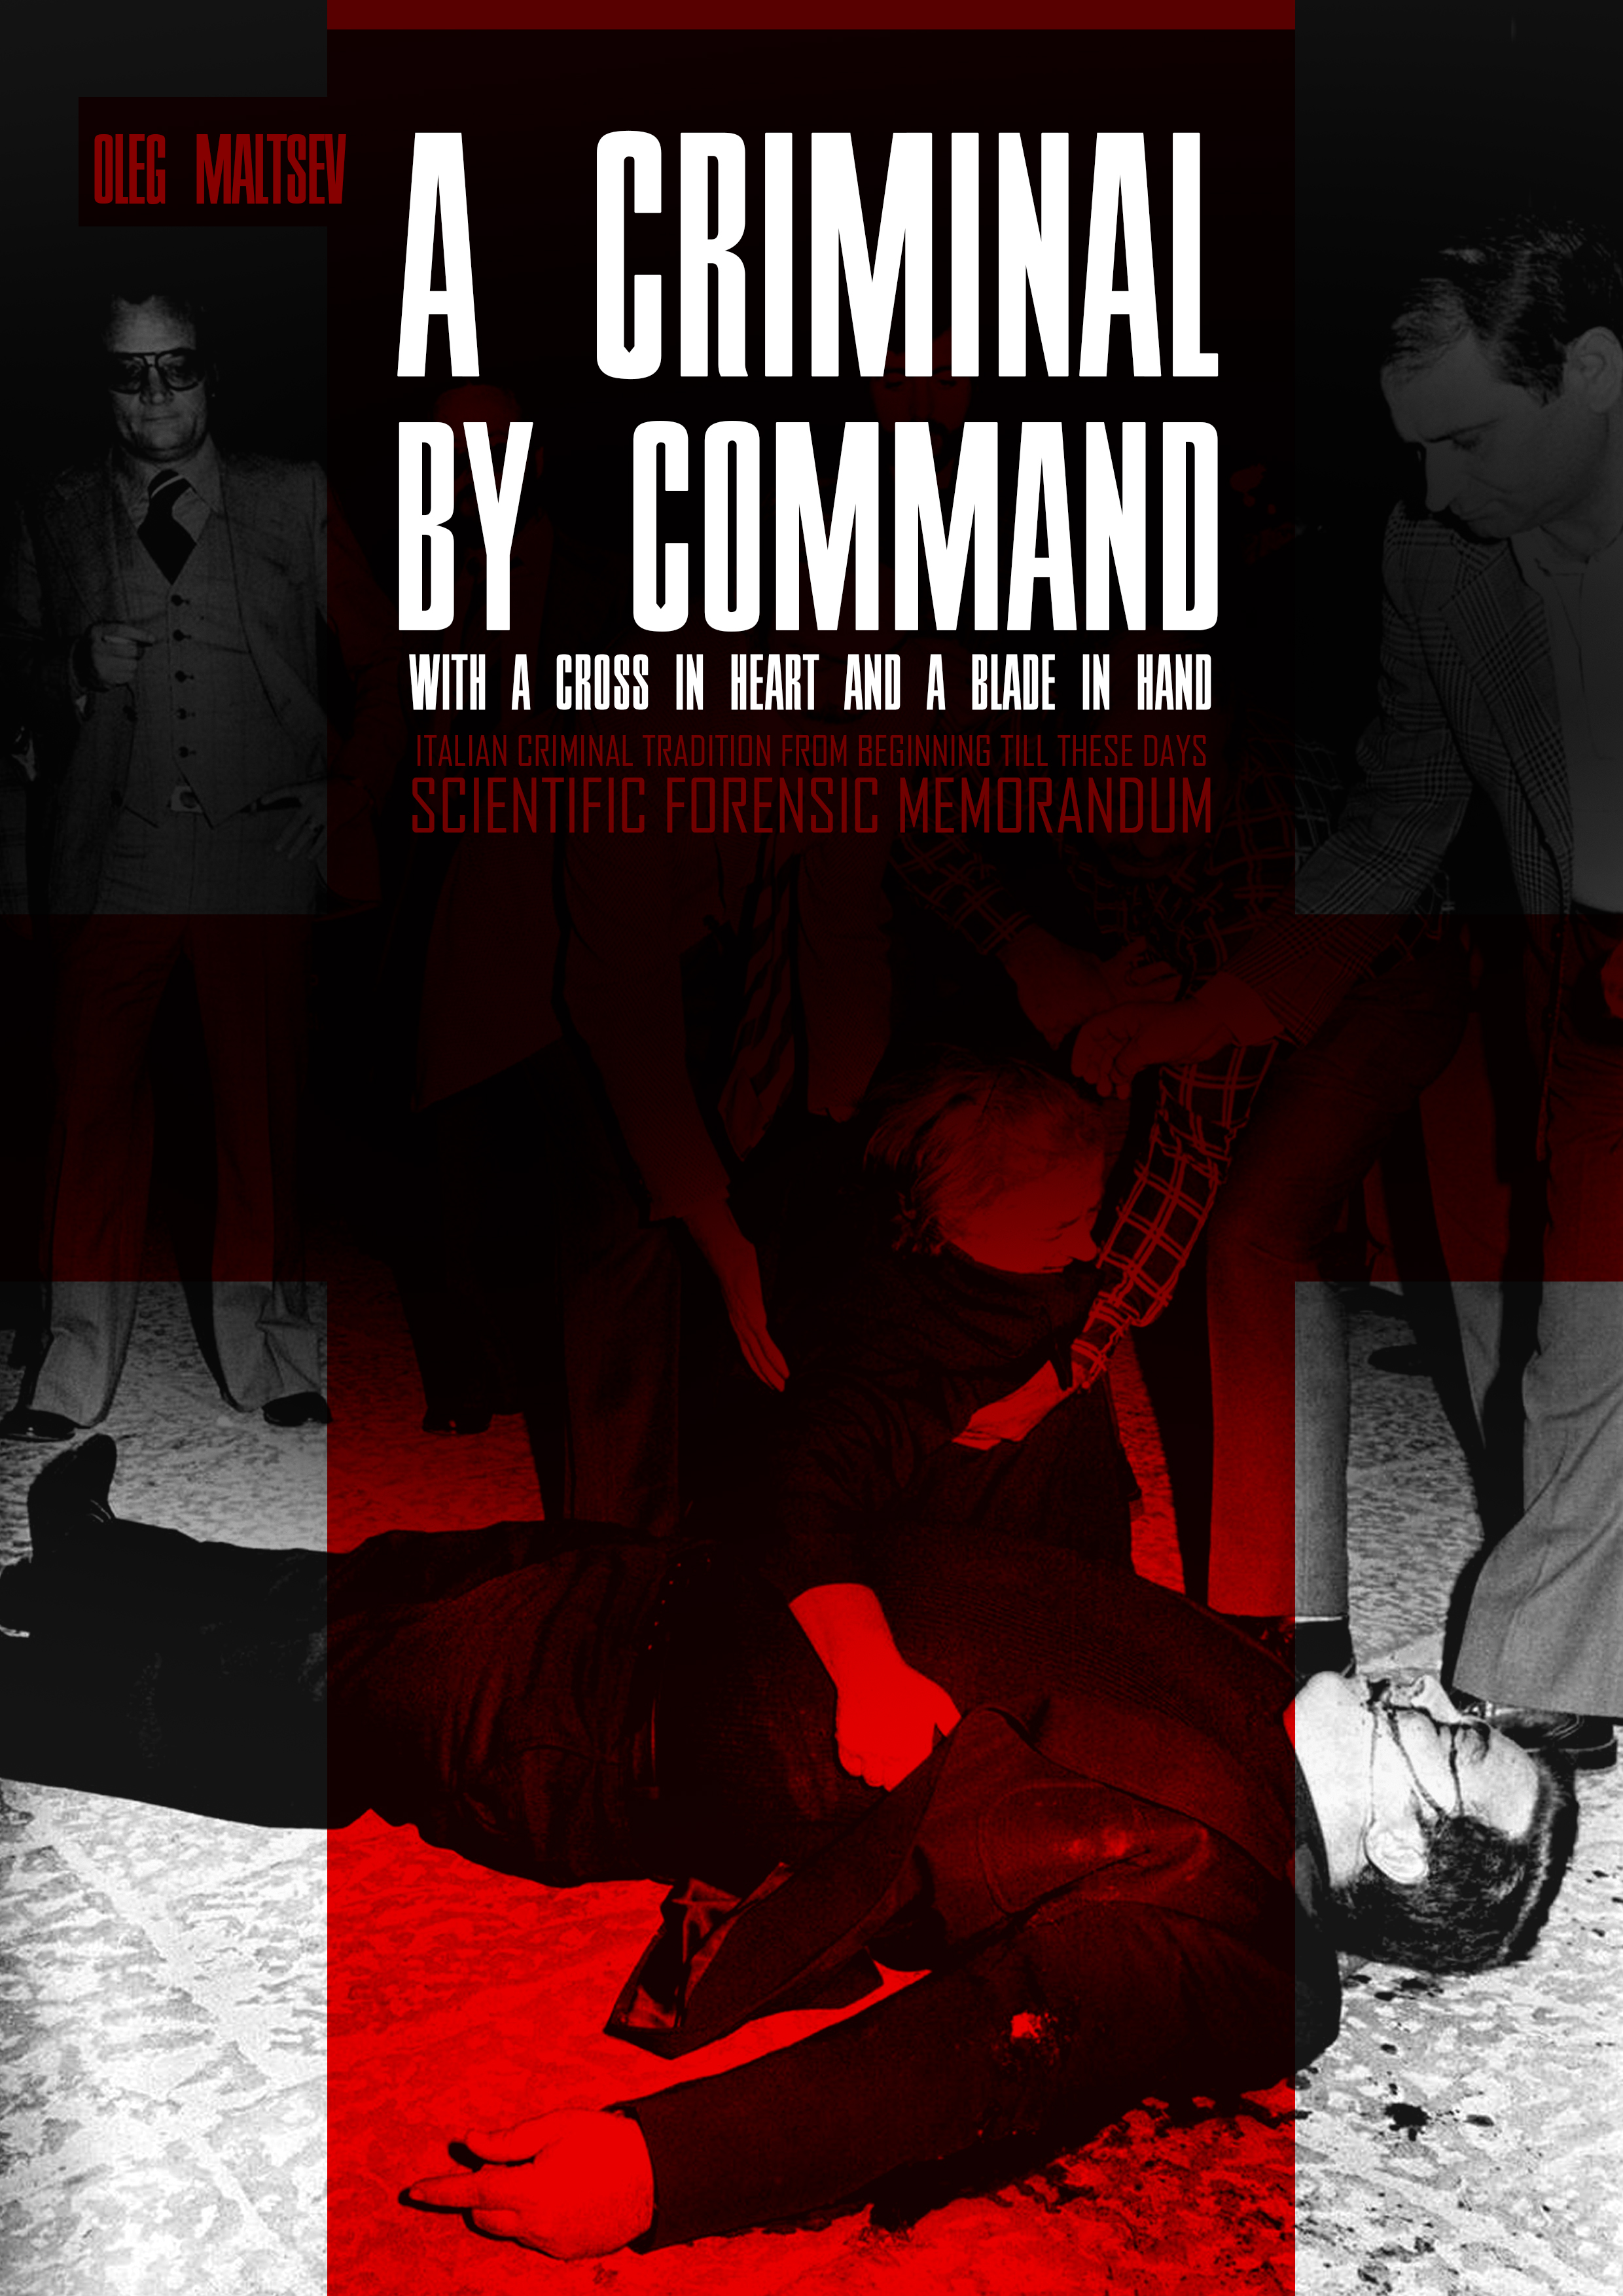 A criminal by command